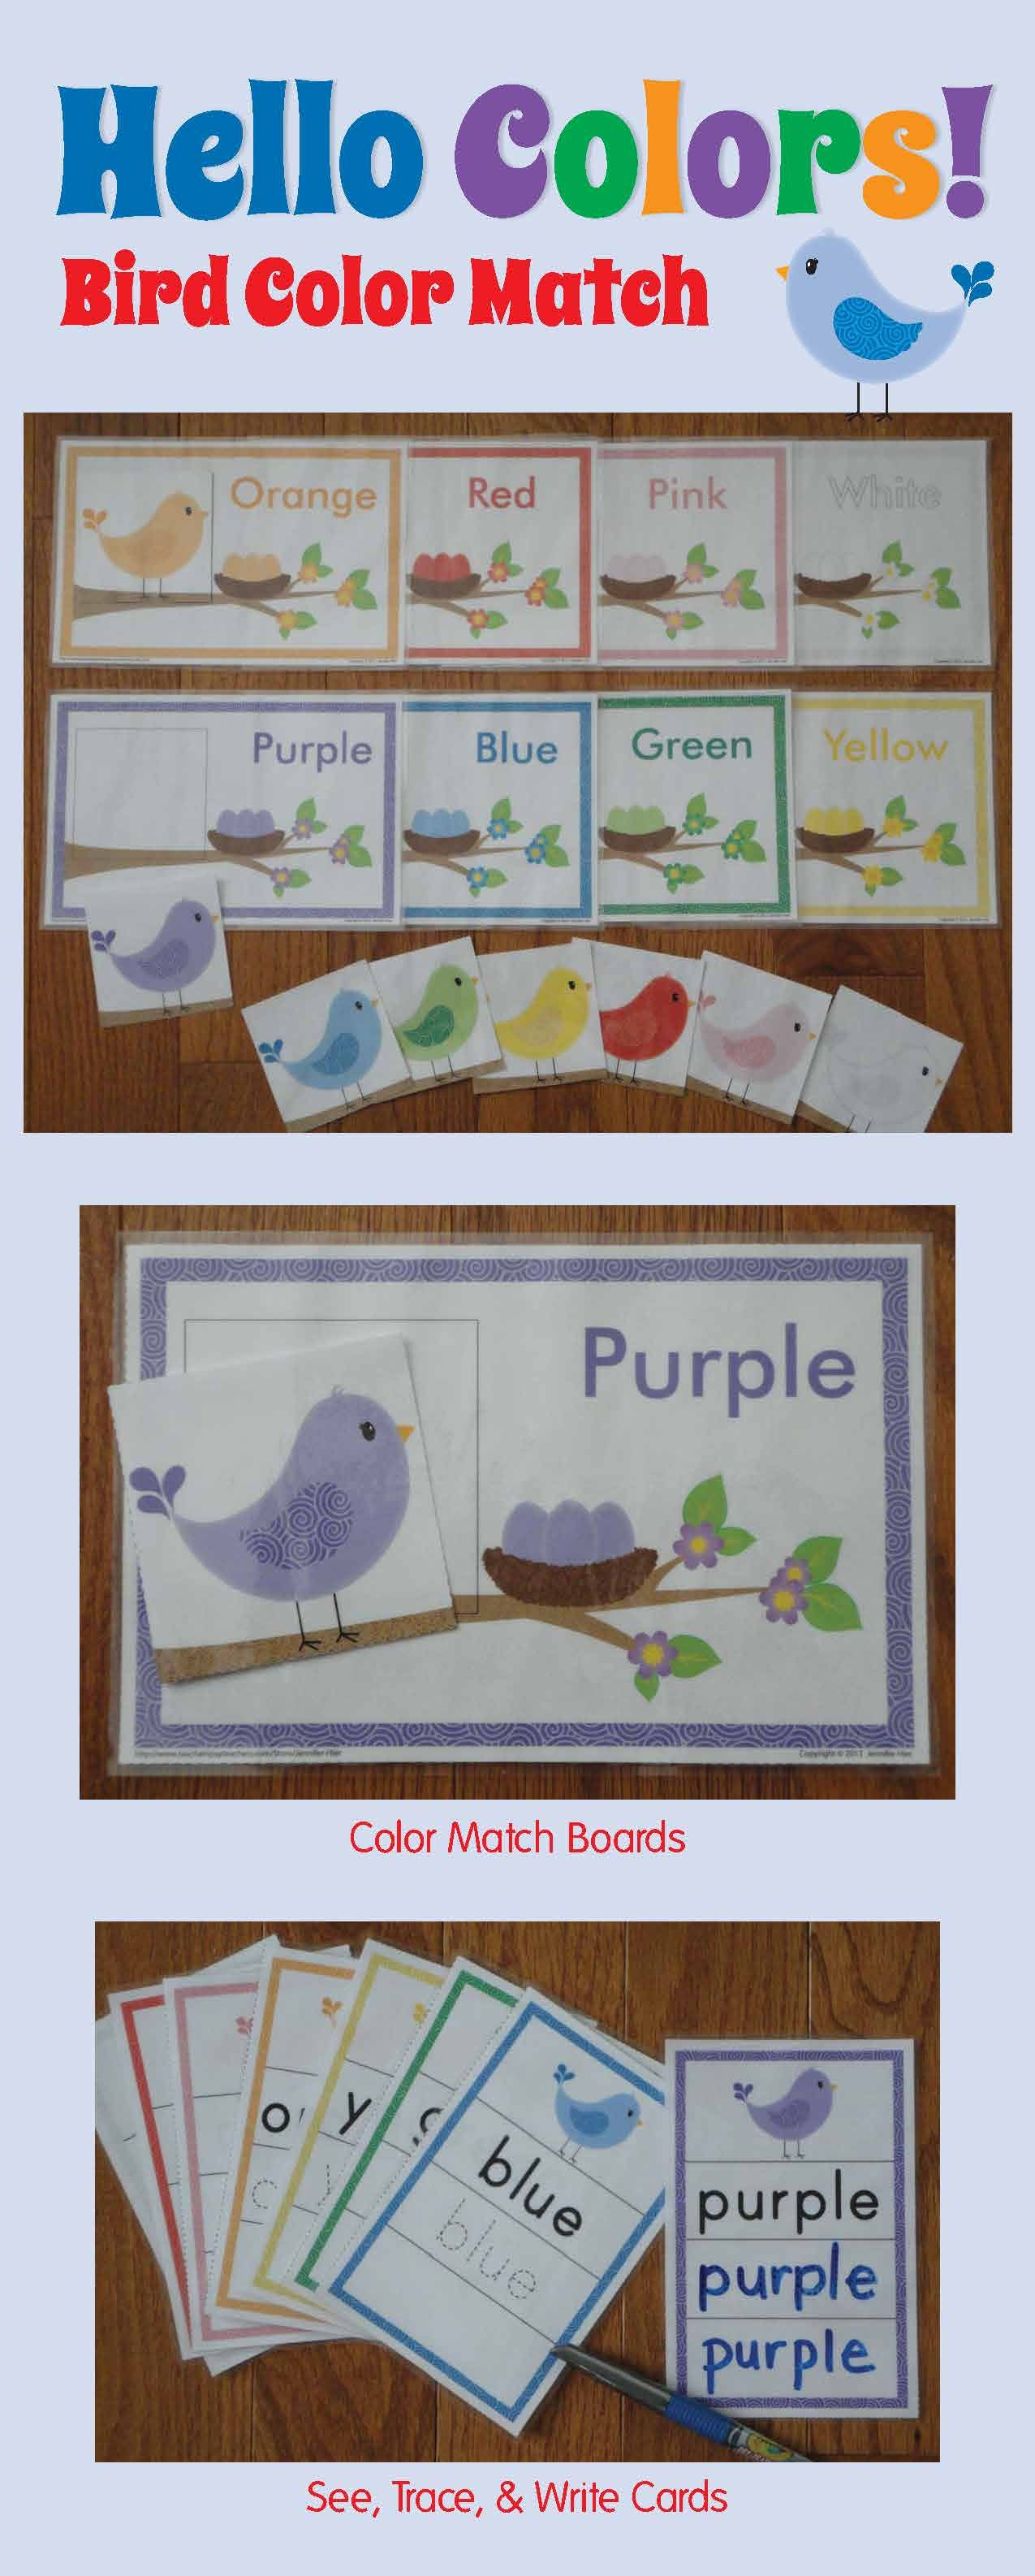 Color Match Activity Spring Bird Color Match